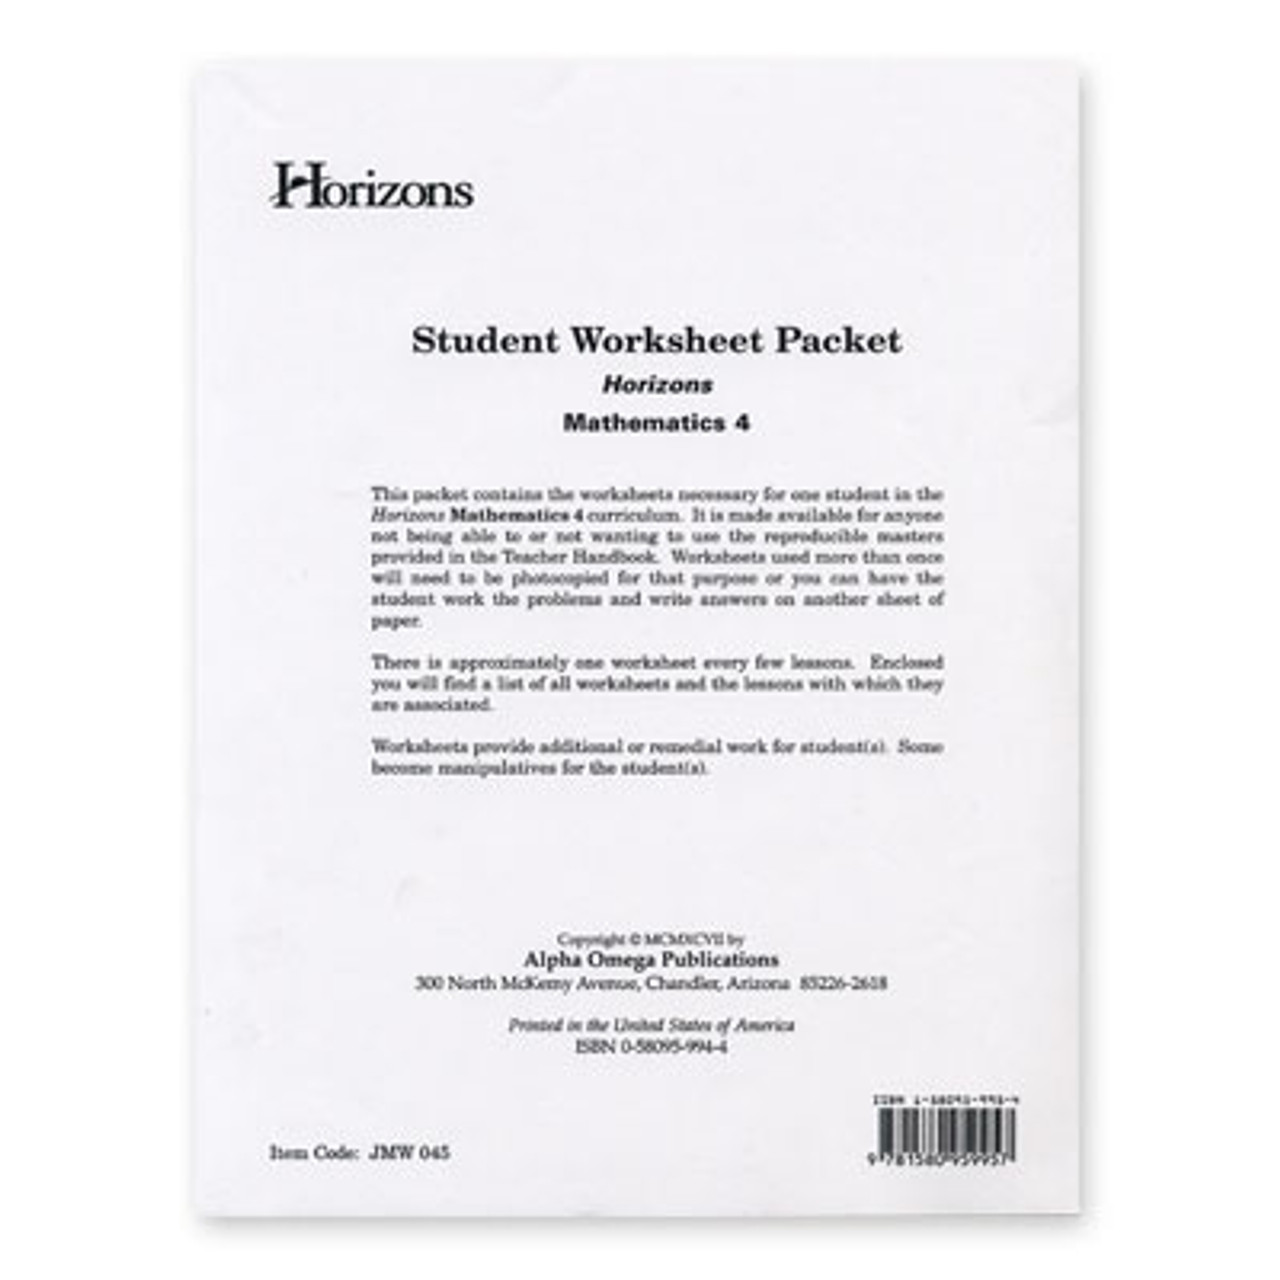 HORIZONS 4th Grade Math Student Worksheet Packet - All Things New [ 1280 x 1280 Pixel ]